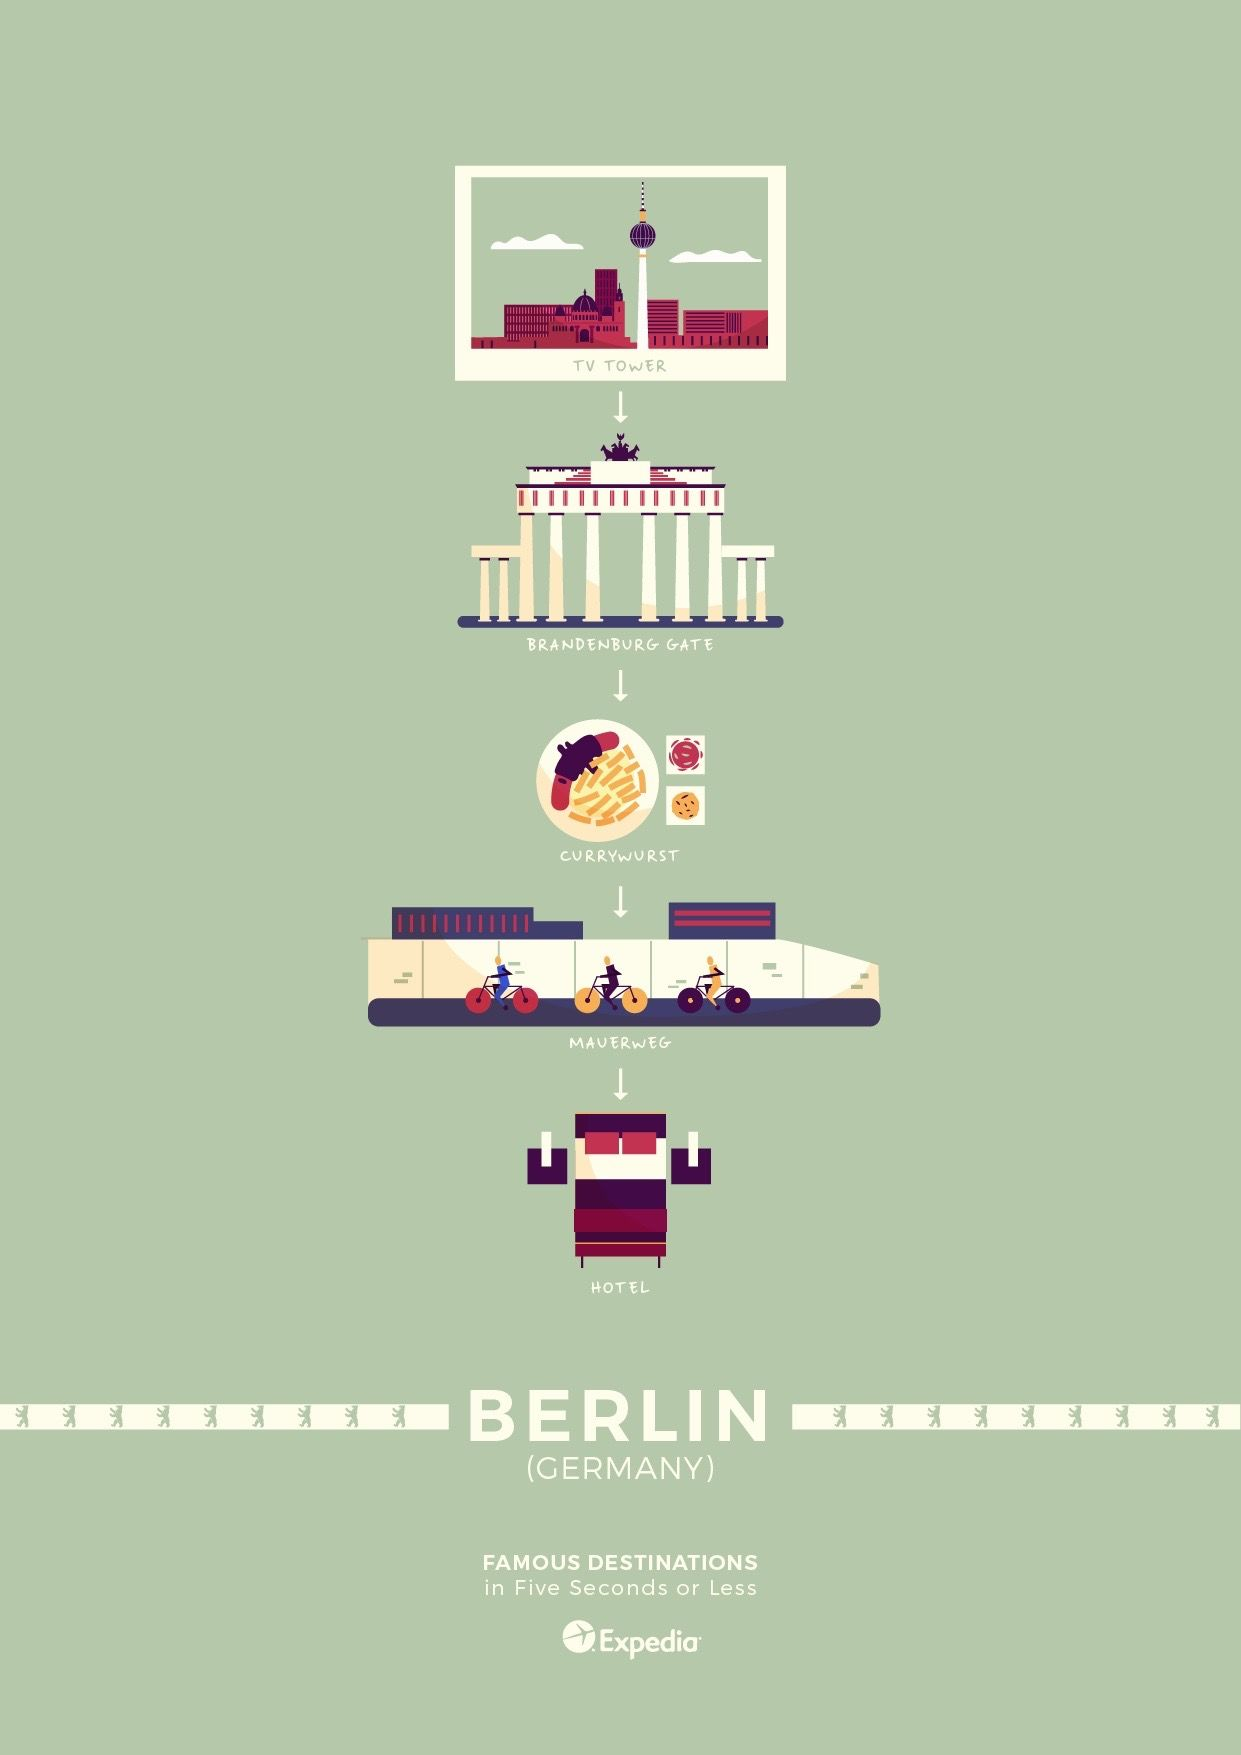 01_Berlin top destinations